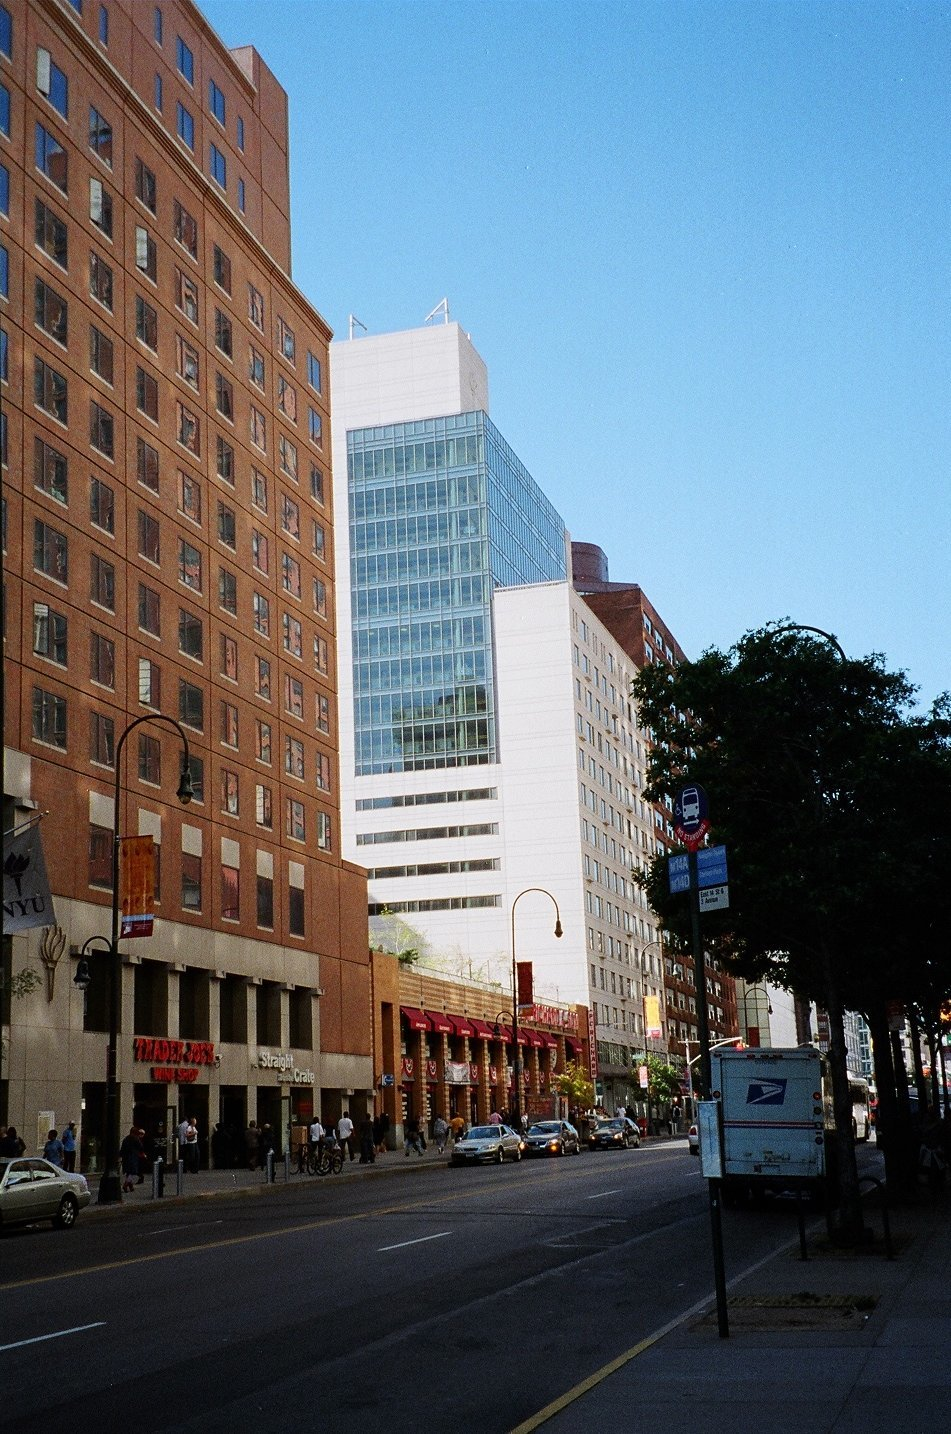 Click photo to download. Caption: On the left is Palladium Hall, a New York University (NYU) dorm that many Jewish students choose to live in, and one of two NYU dorms that saw the posting of anti-Israel mock eviction notices in April. Credit: Eden, Janine and Jim via Wikimedia Commons.